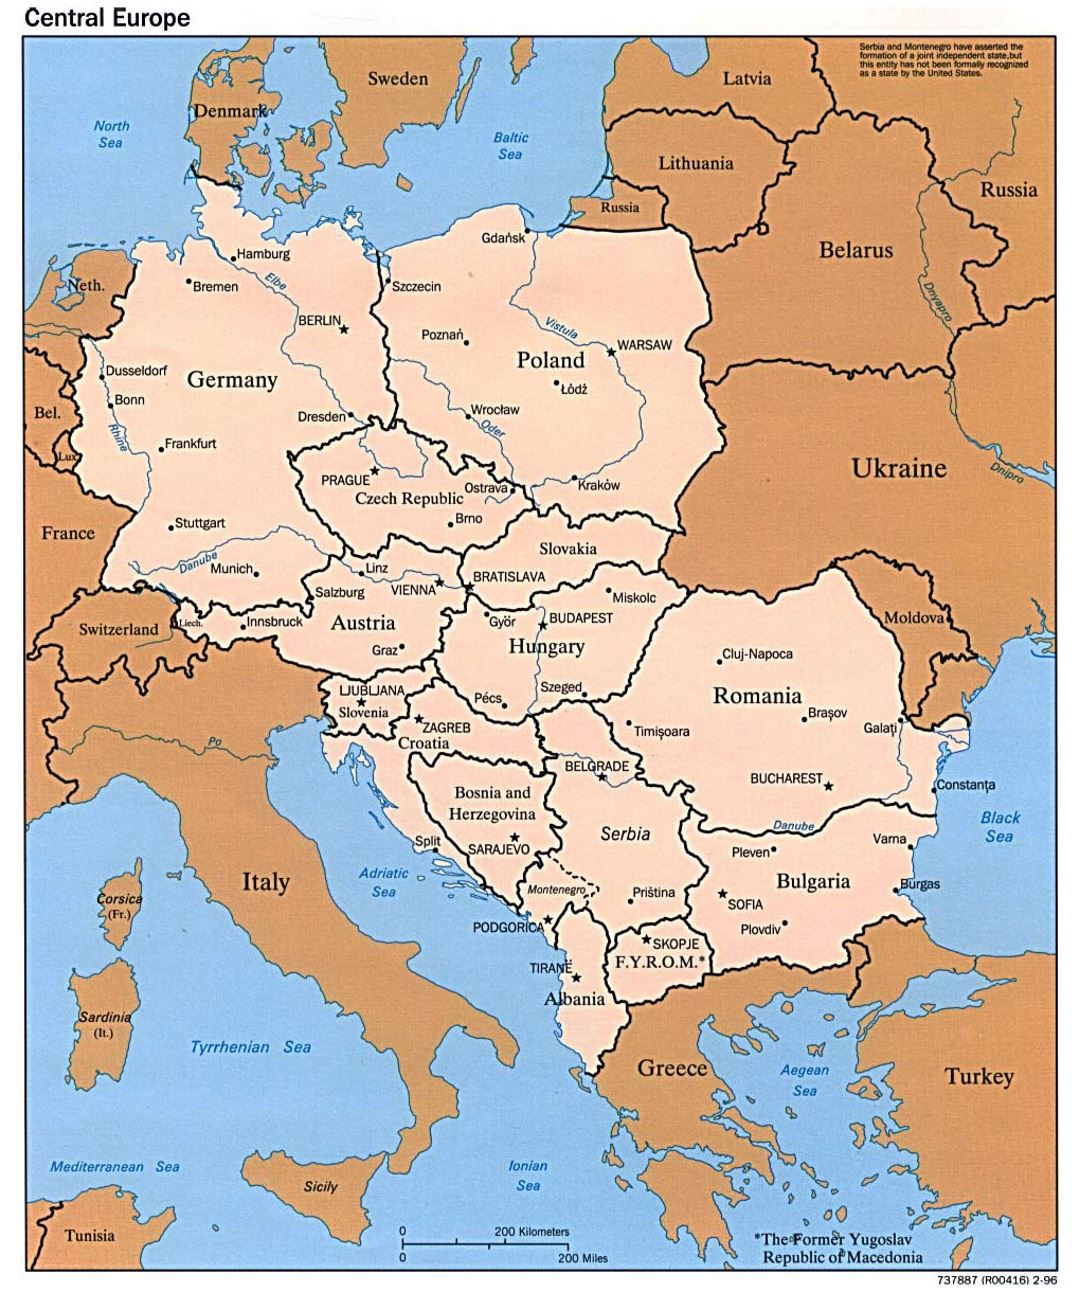 Map Of Central Europe Political map of Central Europe   1996 | Central Europe | Europe  Map Of Central Europe